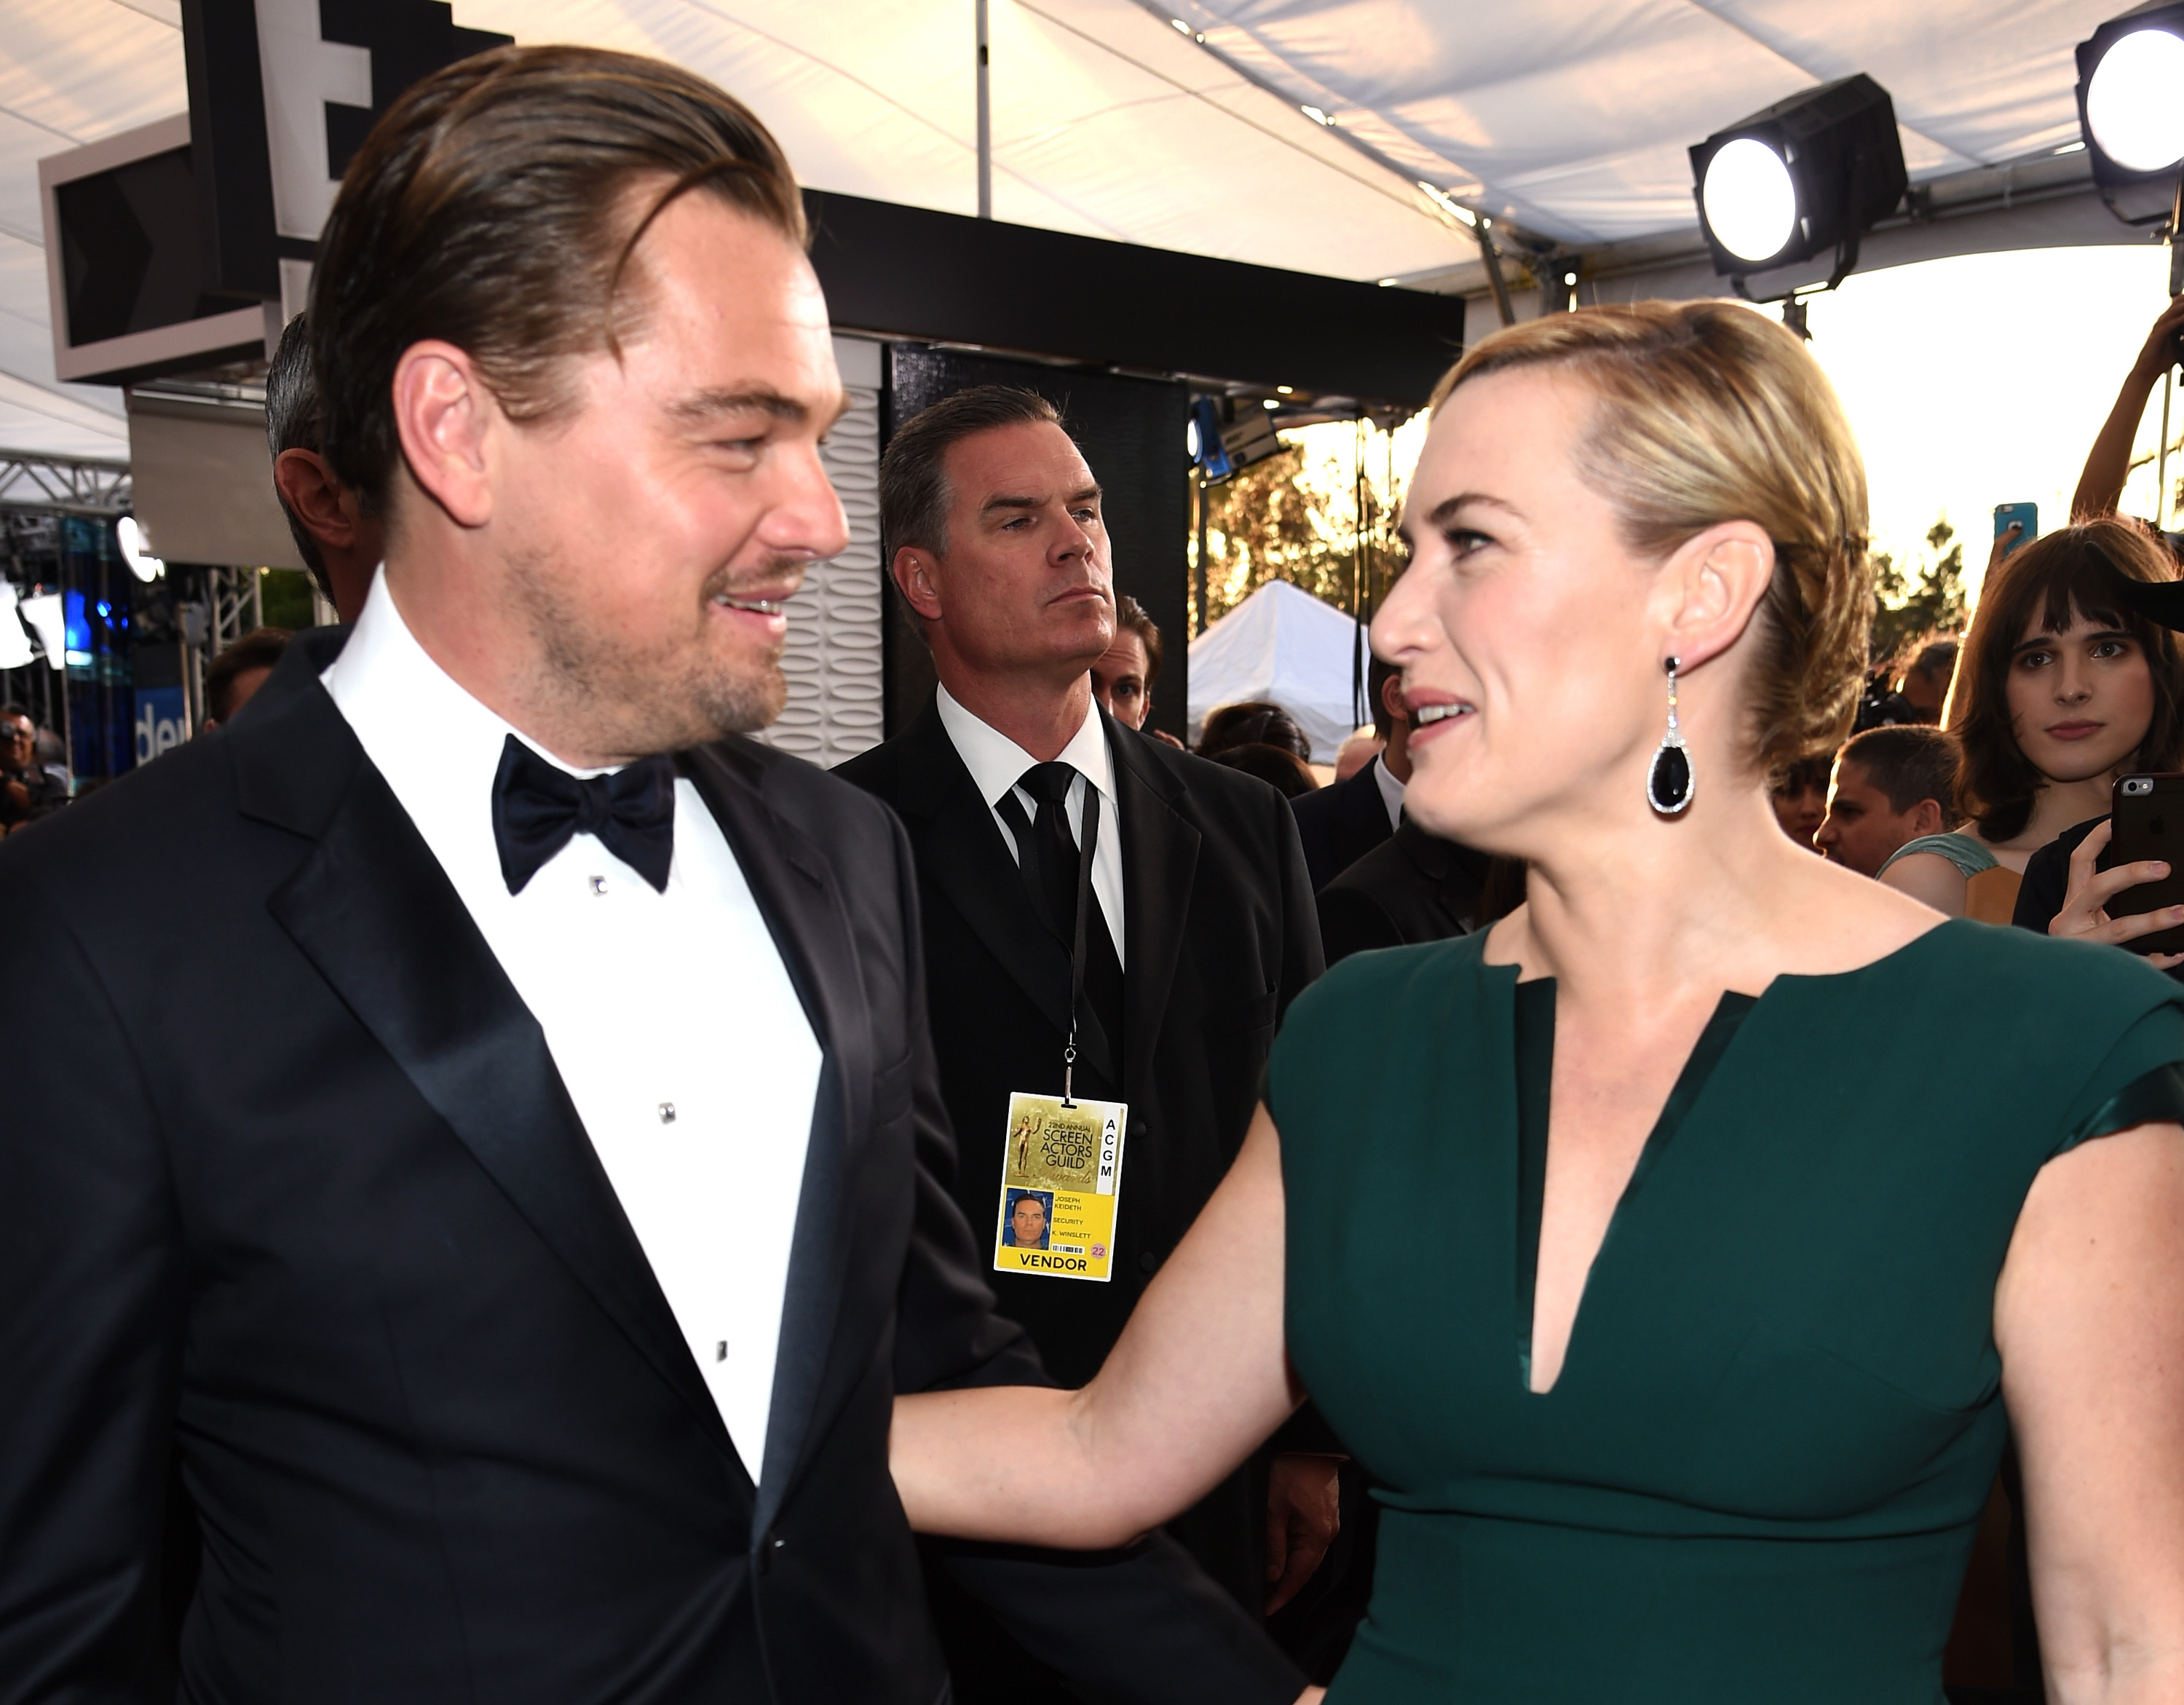 titanic door scene flawed according to kate winslet